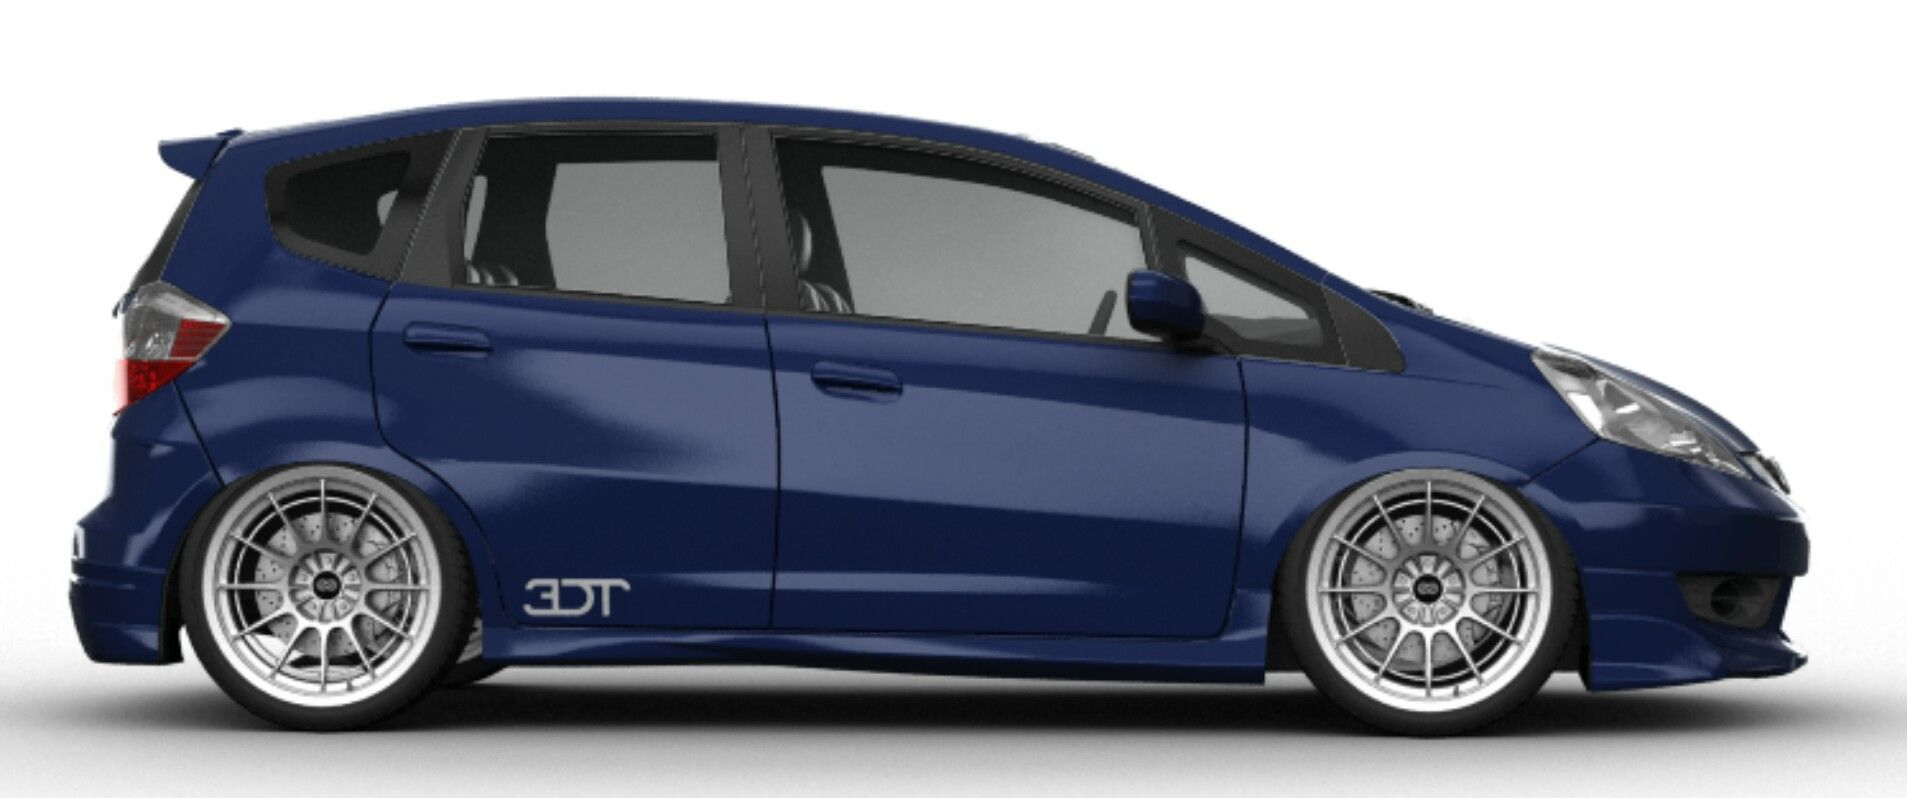 Honda jazz sick also known as honda fit fit gd3 pinterest honda jazz honda fit and honda